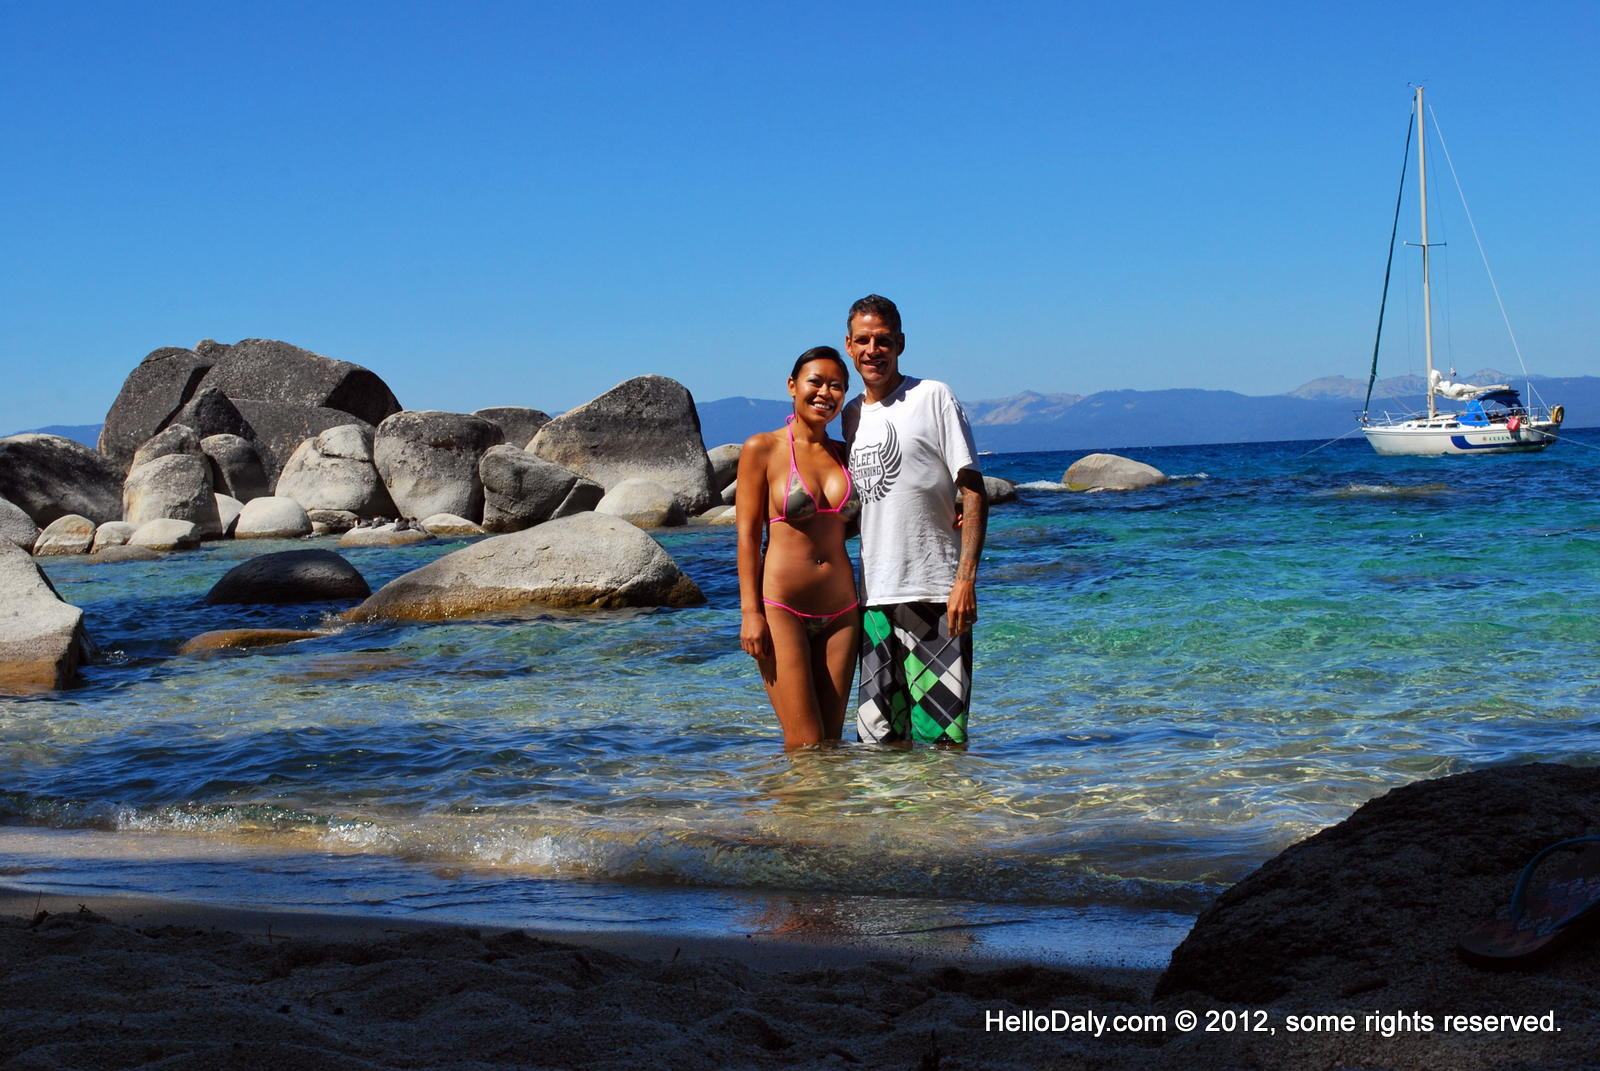 hello daly -~: our summer at lake tahoe